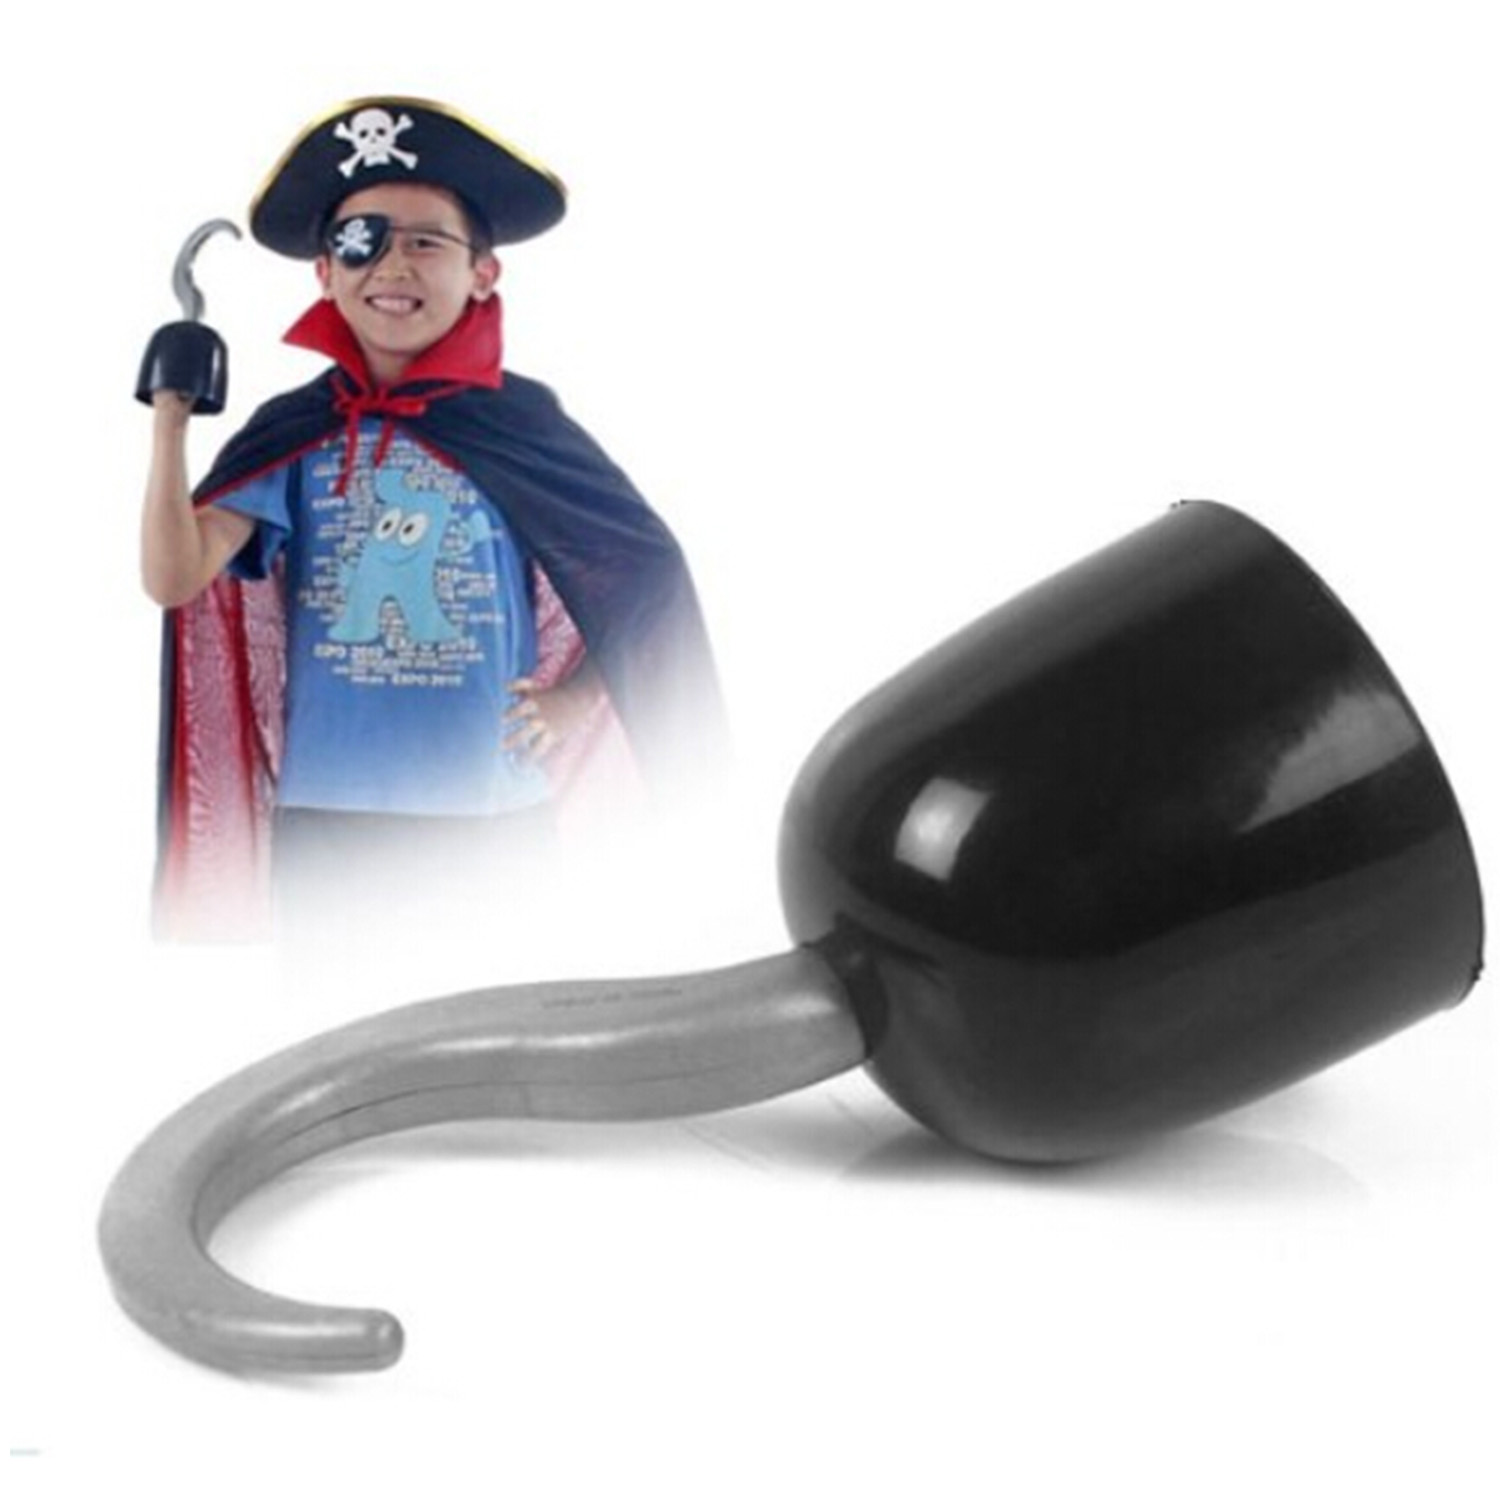 Besegad Kids Plastic Pirate Hook Black Weapon Pirate Ship Captain Crochet Halloween Party Cosplay Pirate Game Props Toy image